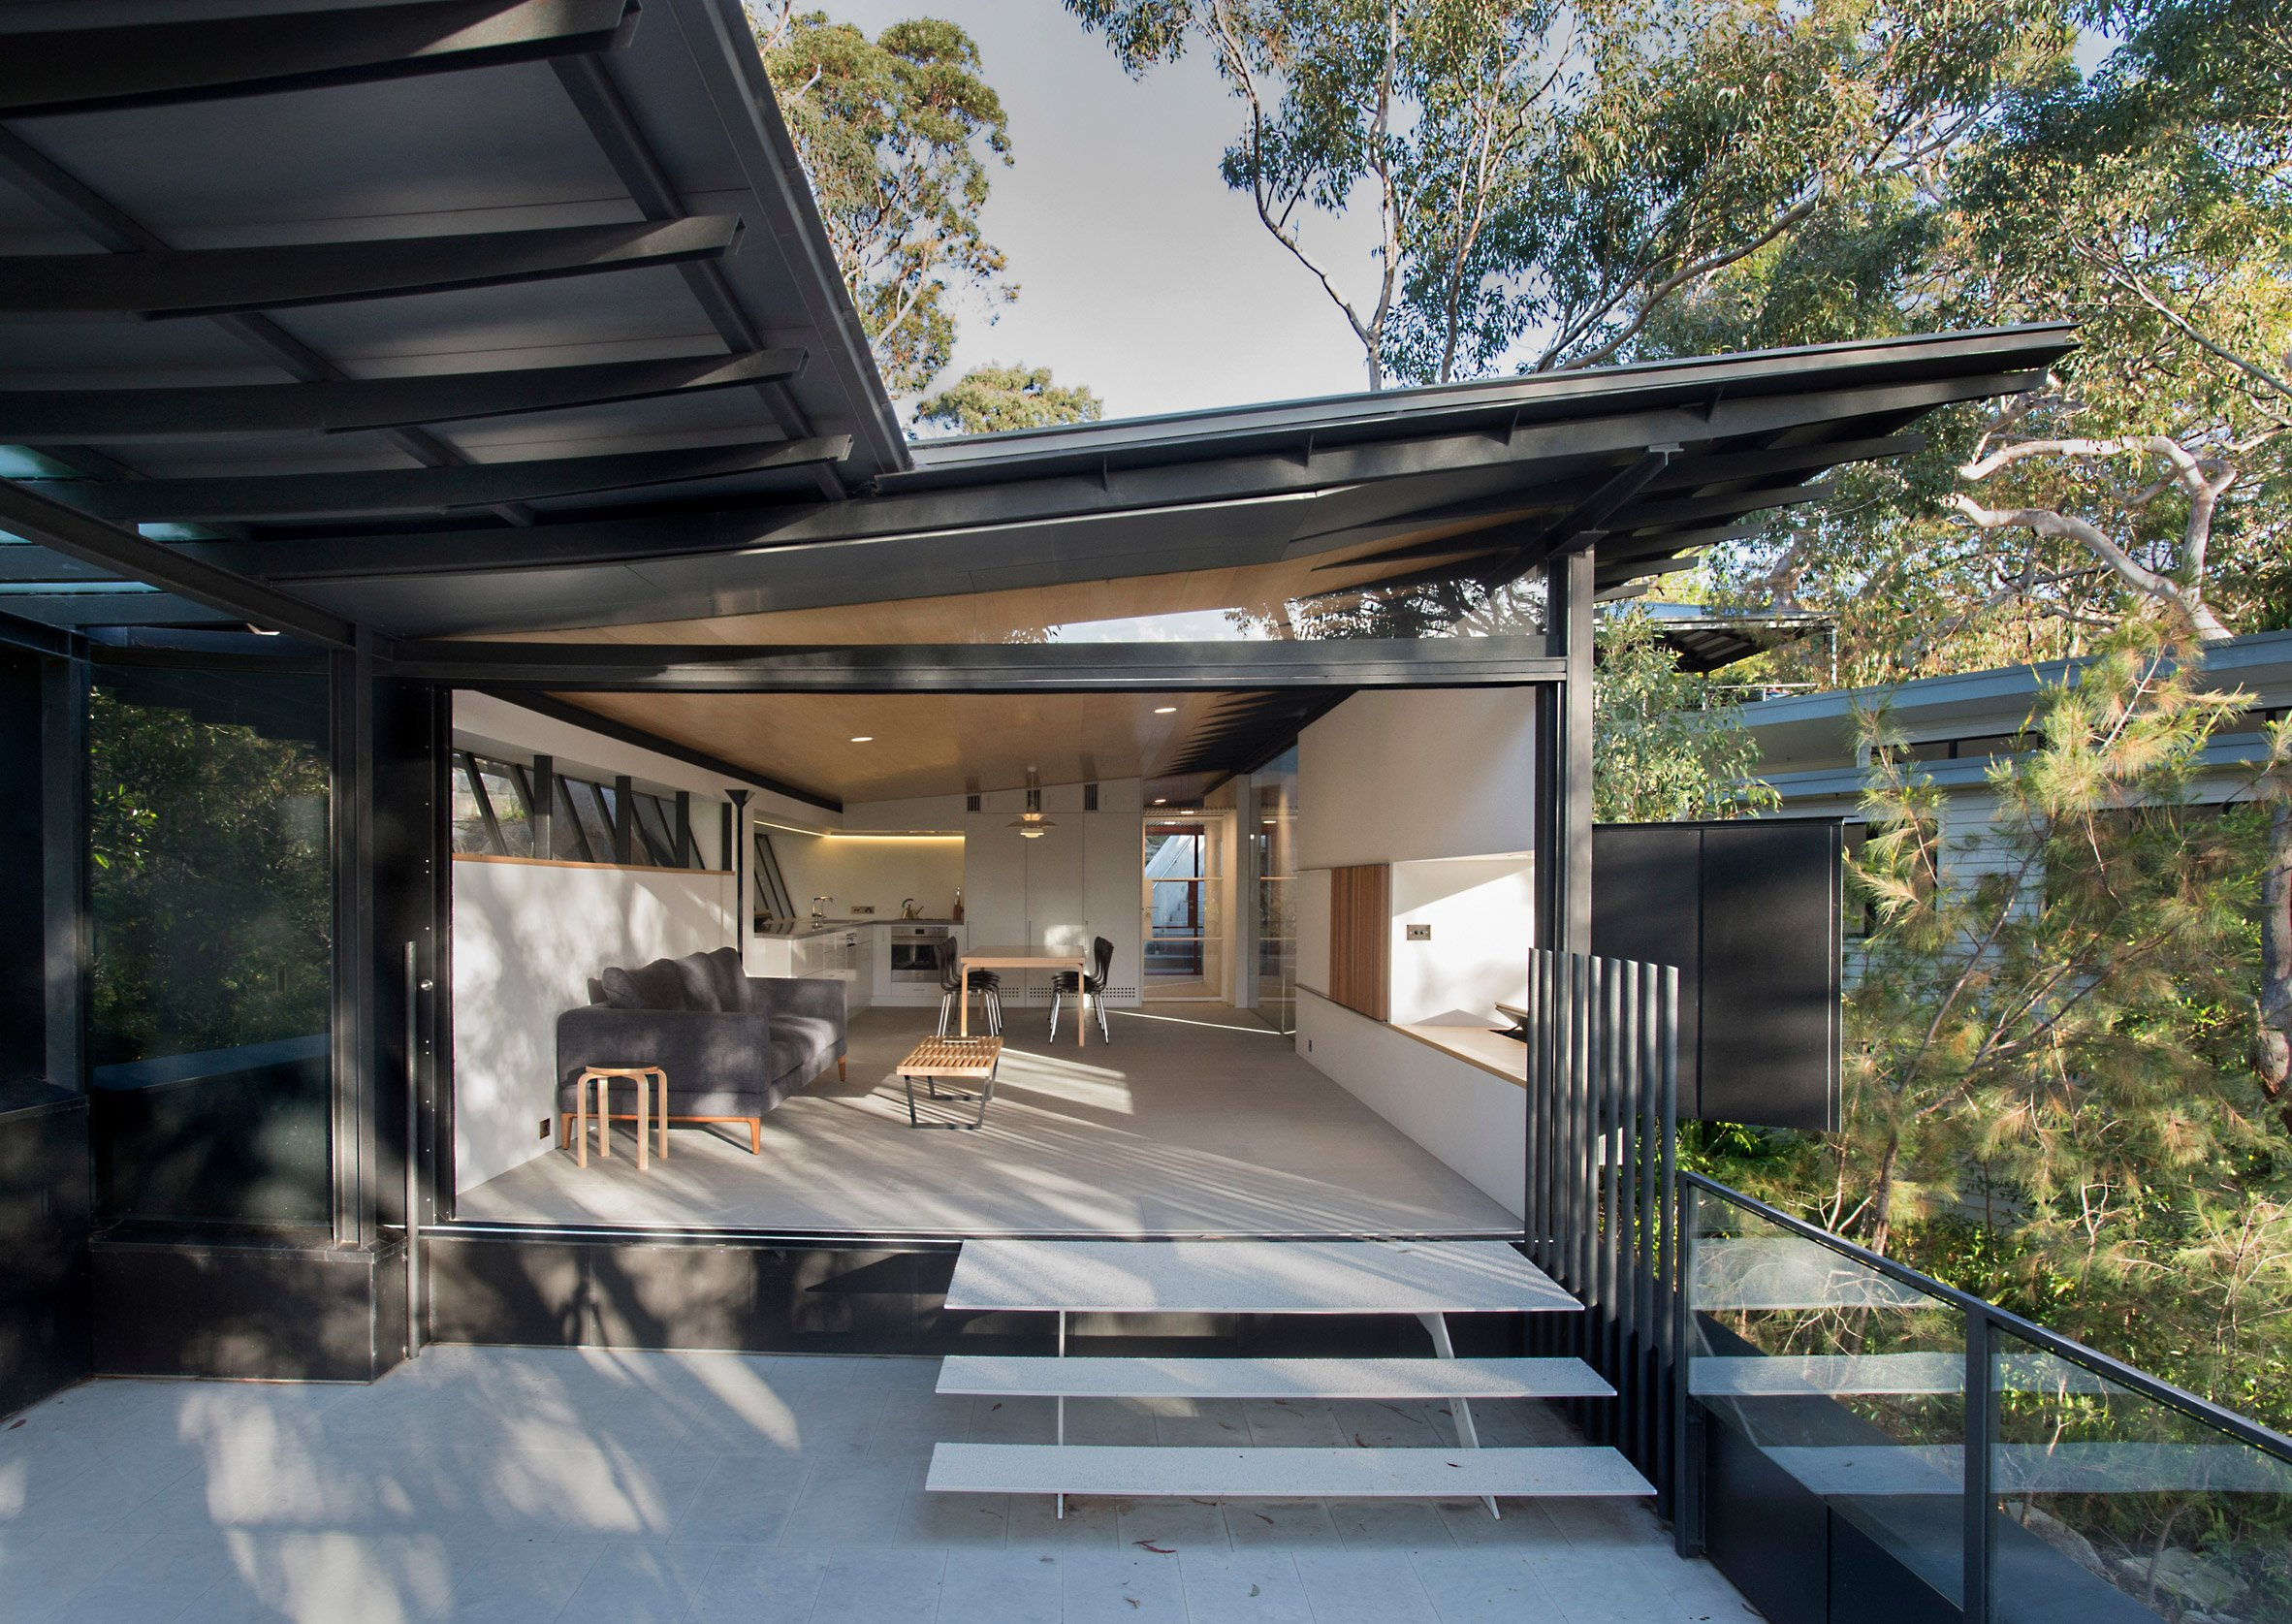 Glenn Murcutt covers bushland home in zinc panels to protect it against wildfires